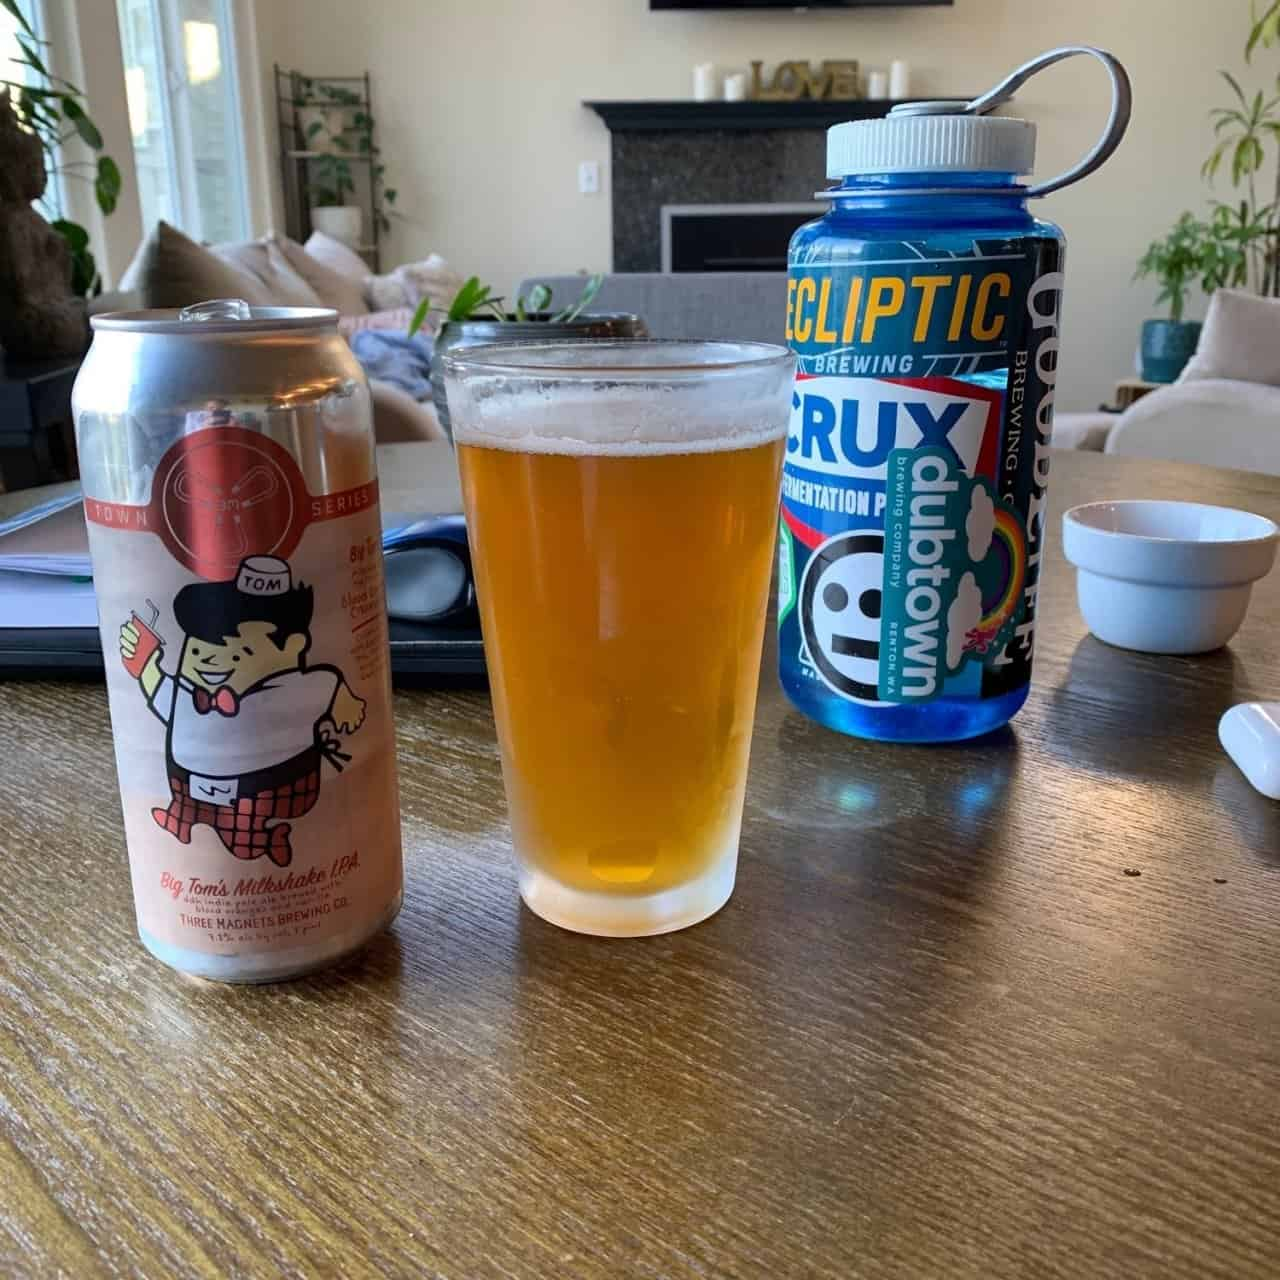 Big Tom's Milkshake IPA